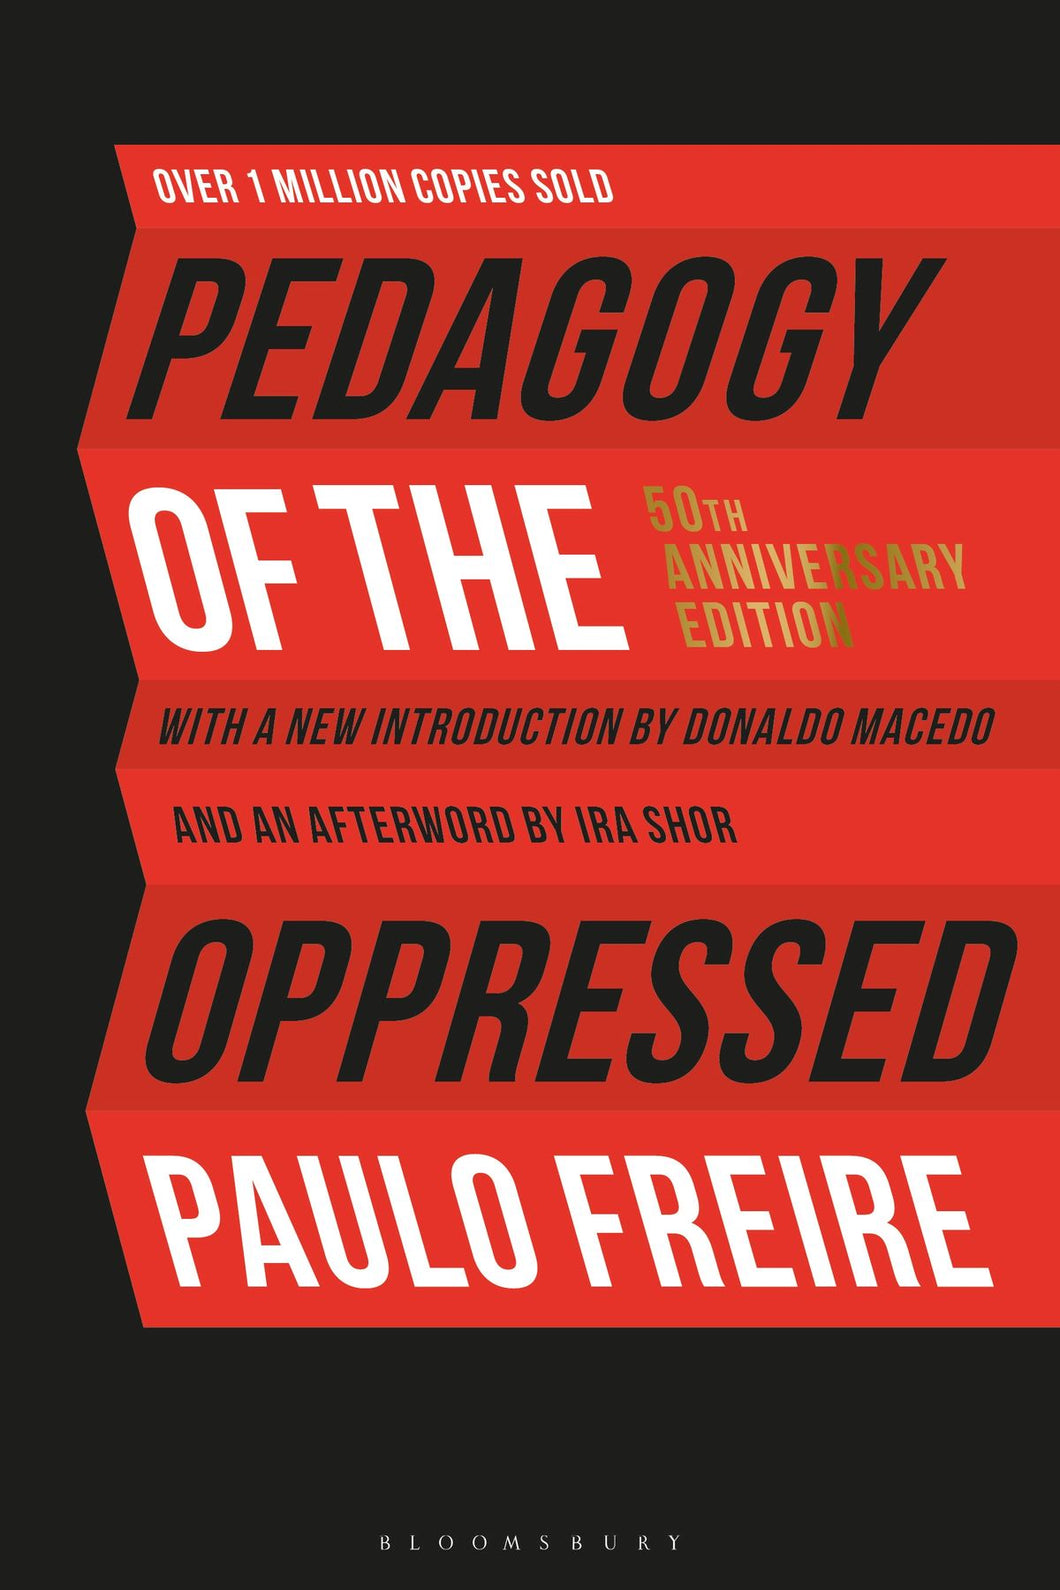 Pedagogy of the Oppressed by Paulo Freire (50th Anniversary Edition)